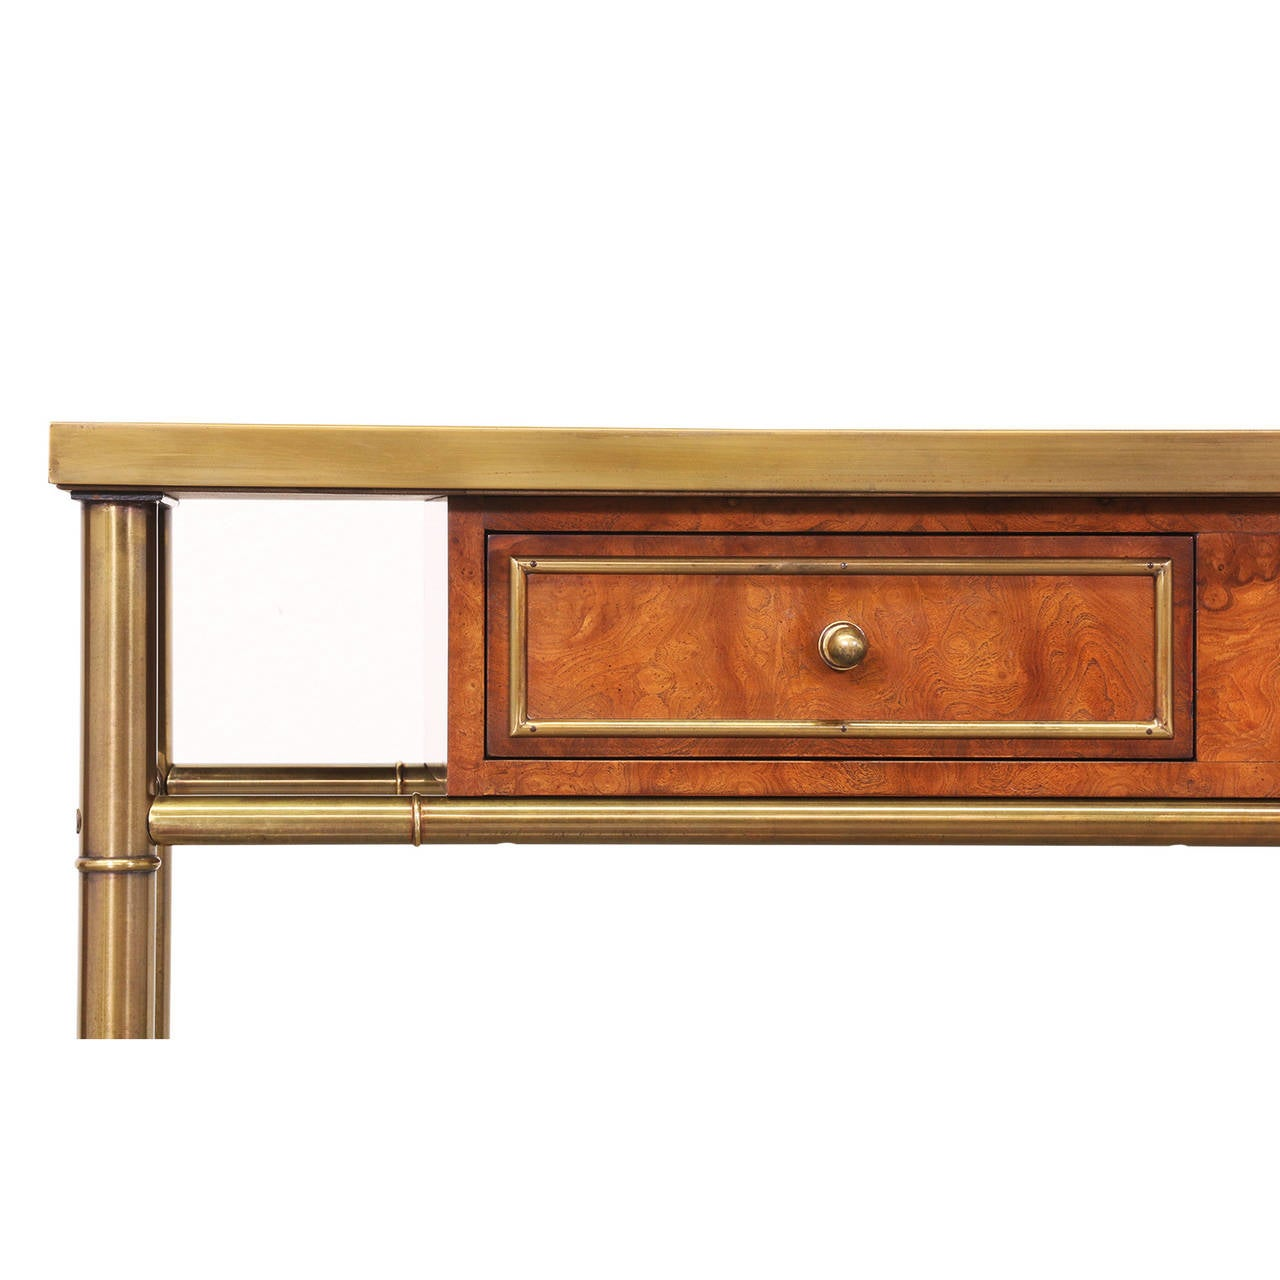 Mastercraft Amboyna Burl Wood & Patinated Brass Console Table w/ Etched Top 3